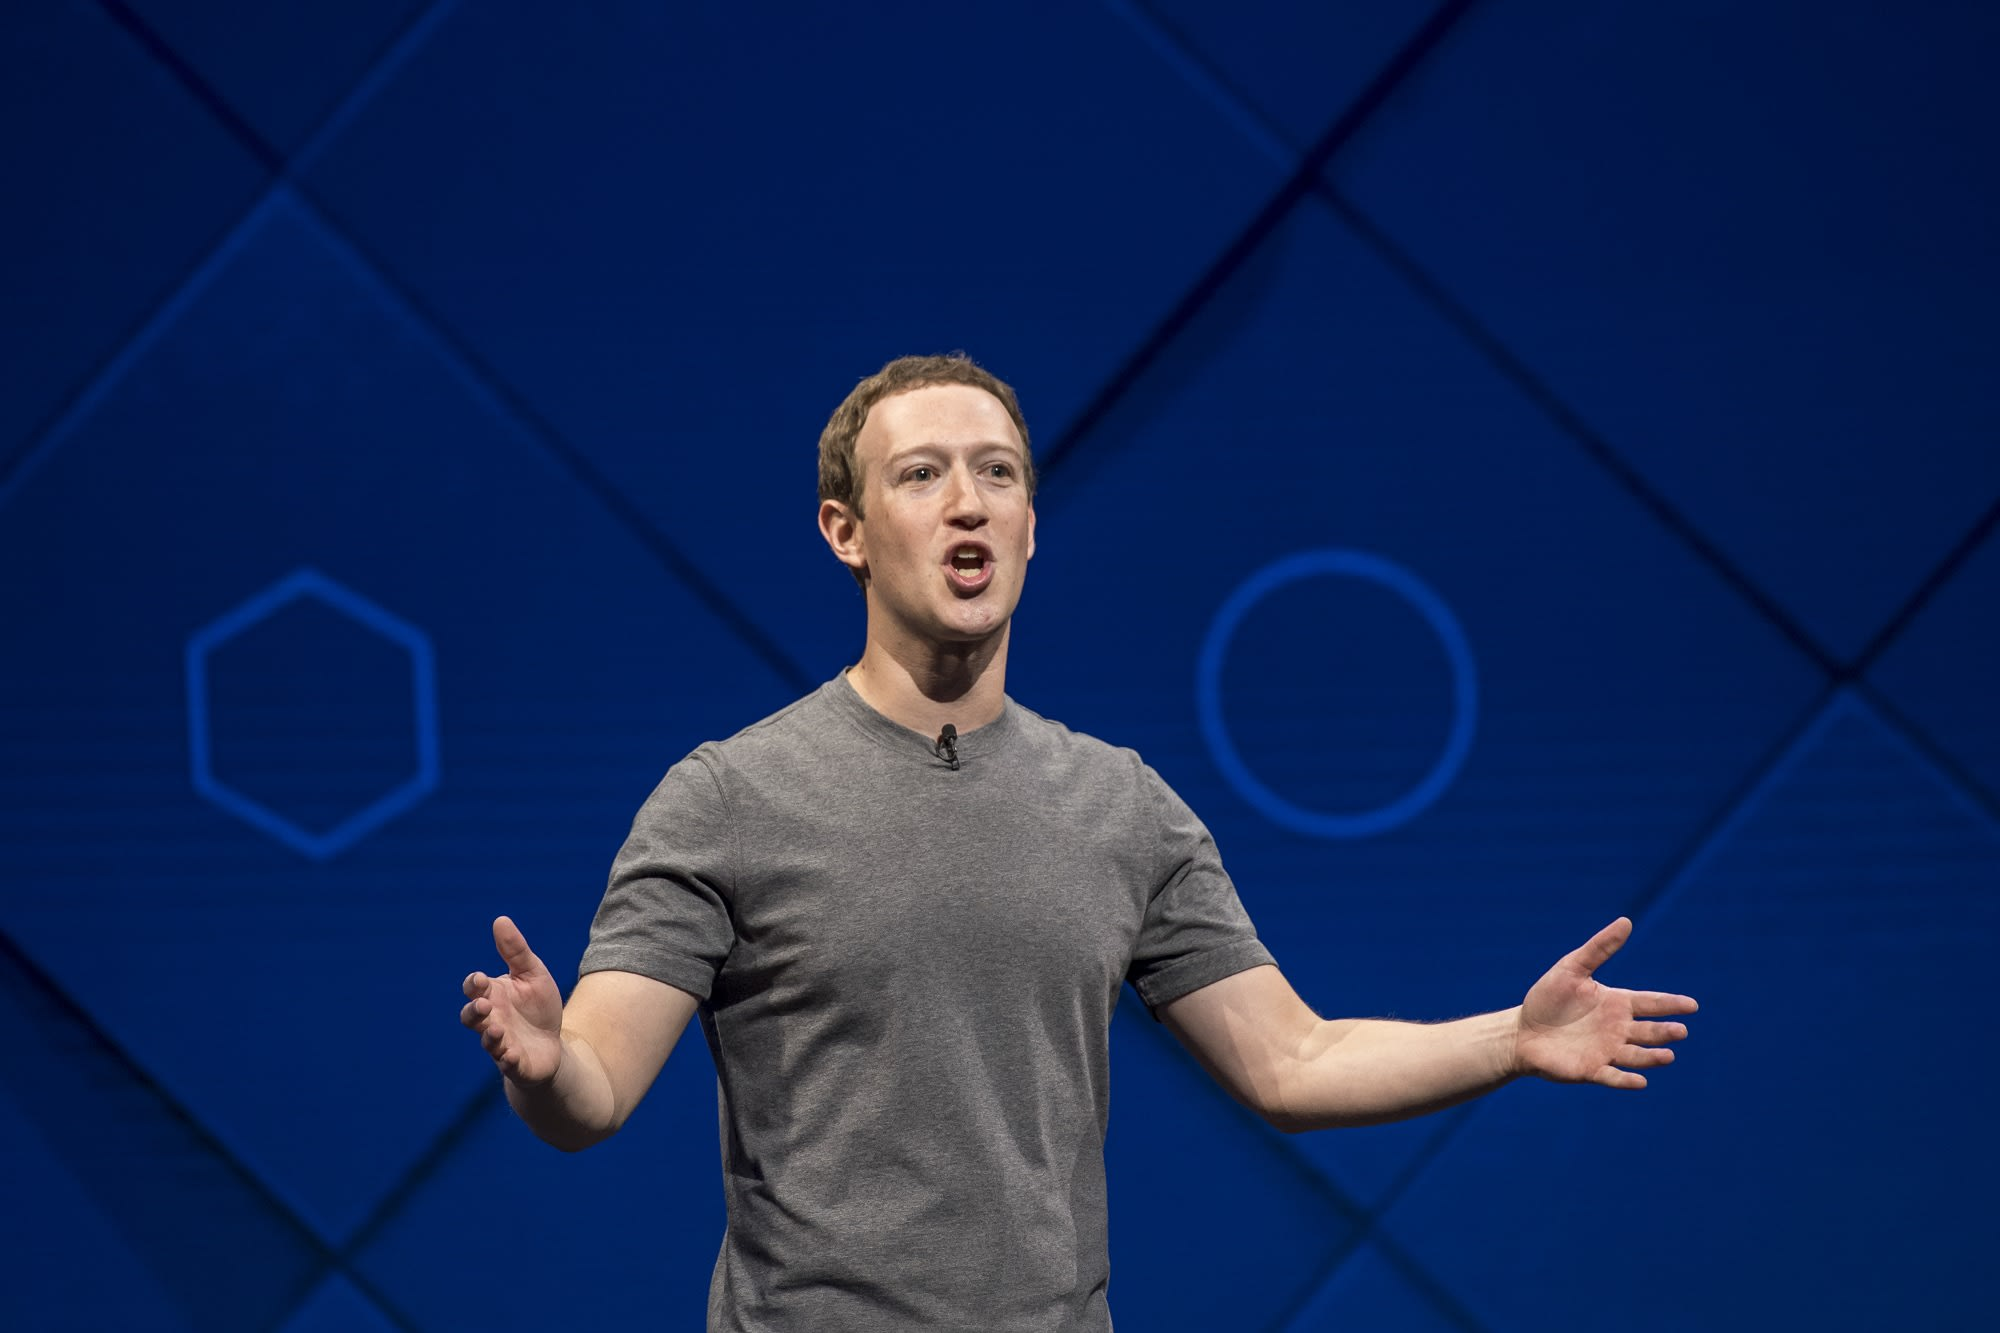 Facebook shuts down an influence campaign it claims was tied to Saudis